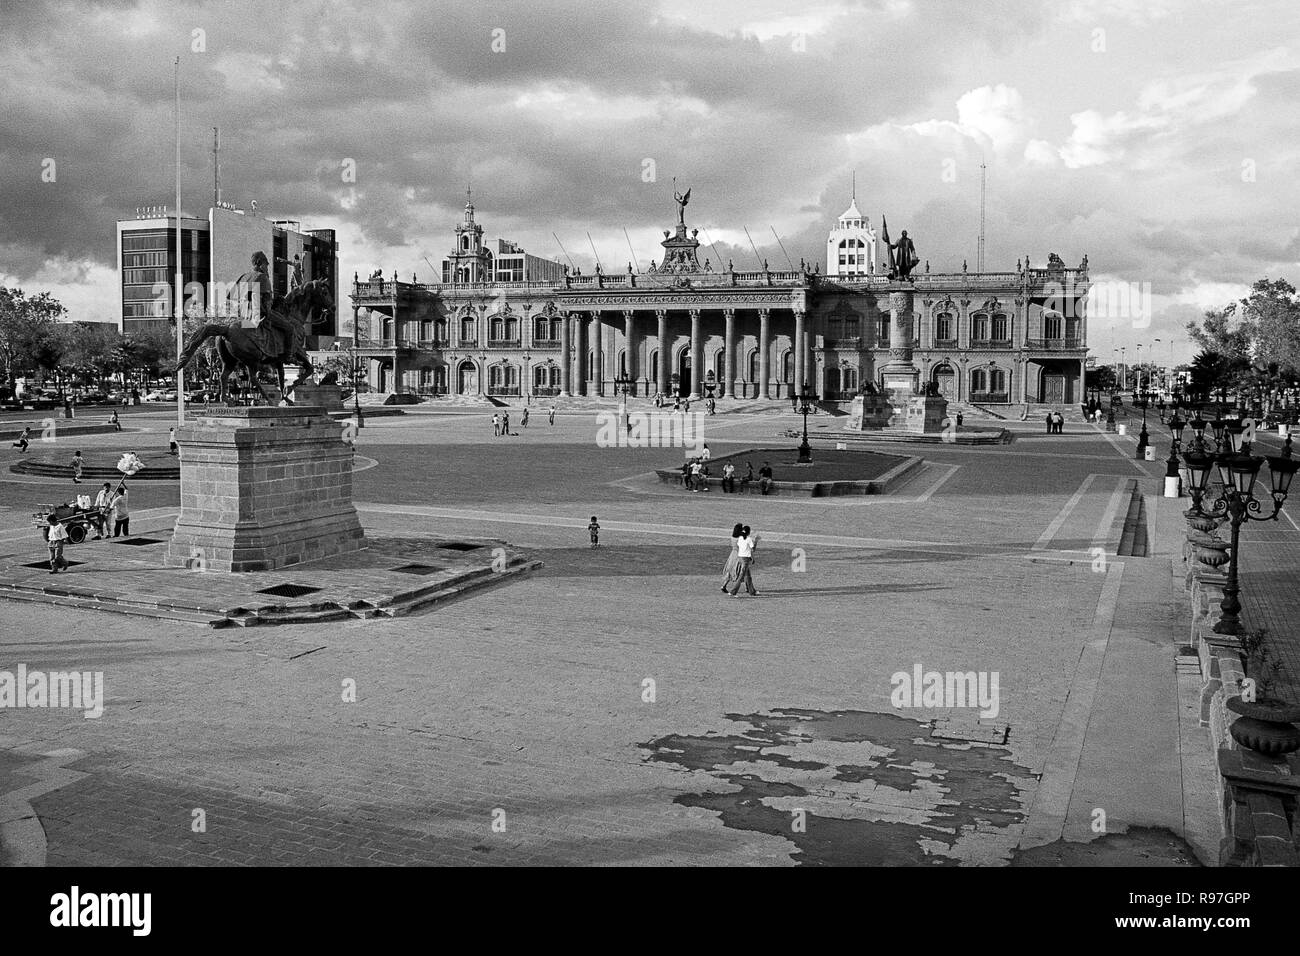 MONTERREY, NL/MEXICO - NOV 10, 2003: View of the Macroplaza and the Governor's palace on the background Stock Photo